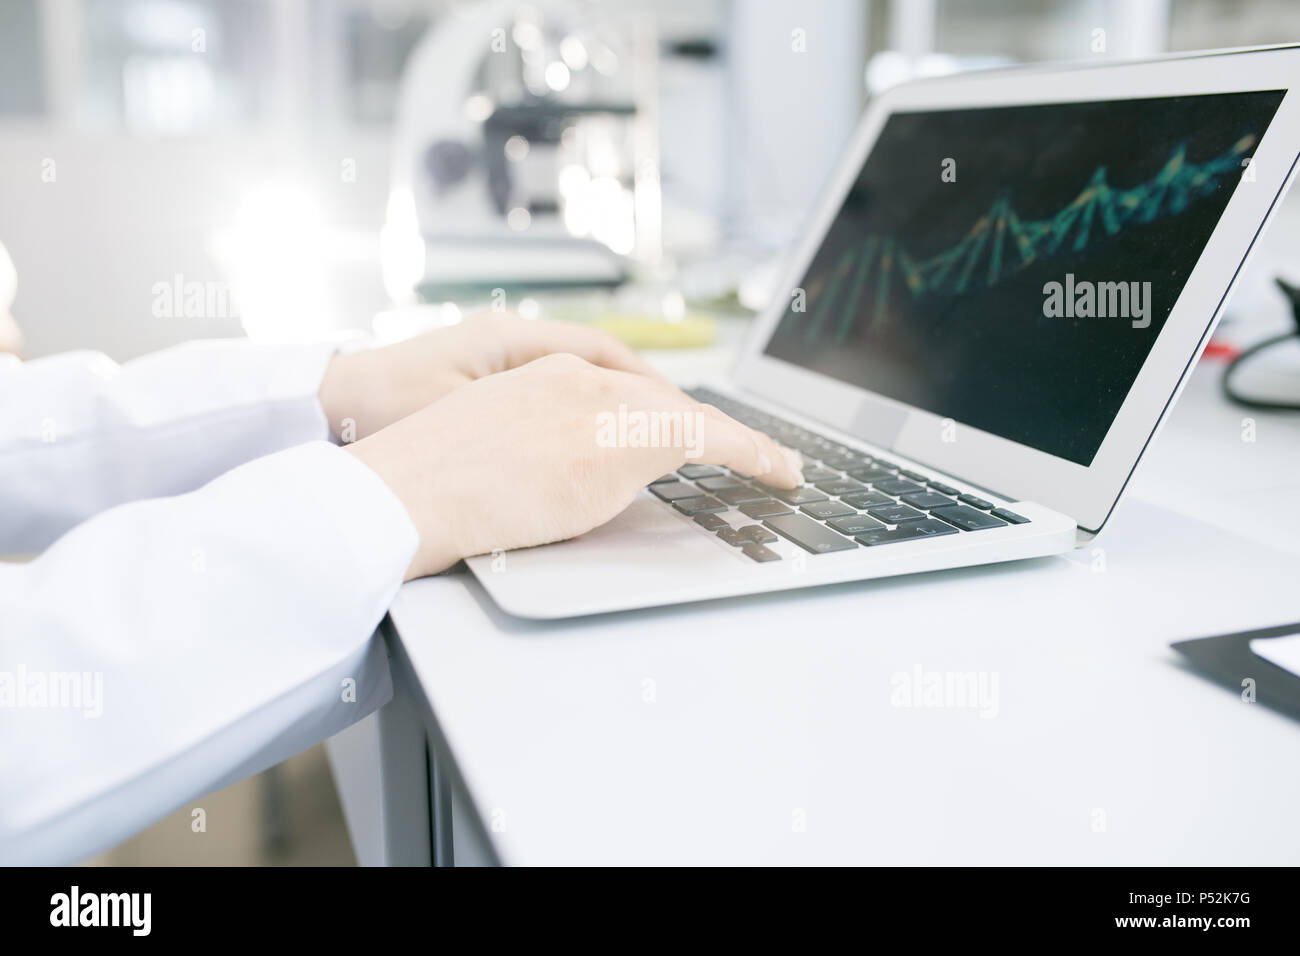 Scientist hands editing DNA model on laptop - Stock Image